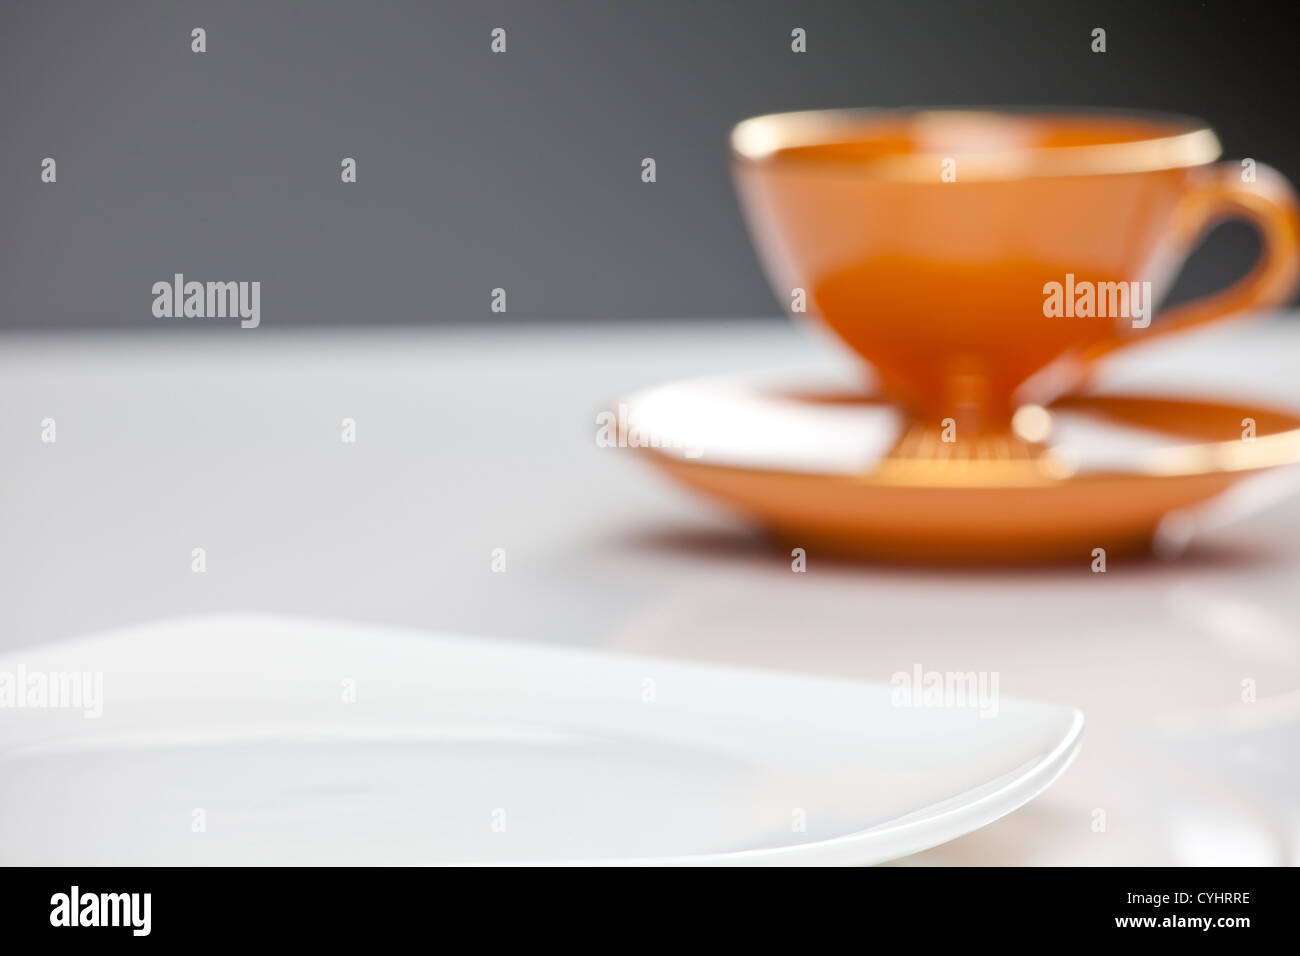 orange tea cup and white plate on reflective white surface. - Stock Image